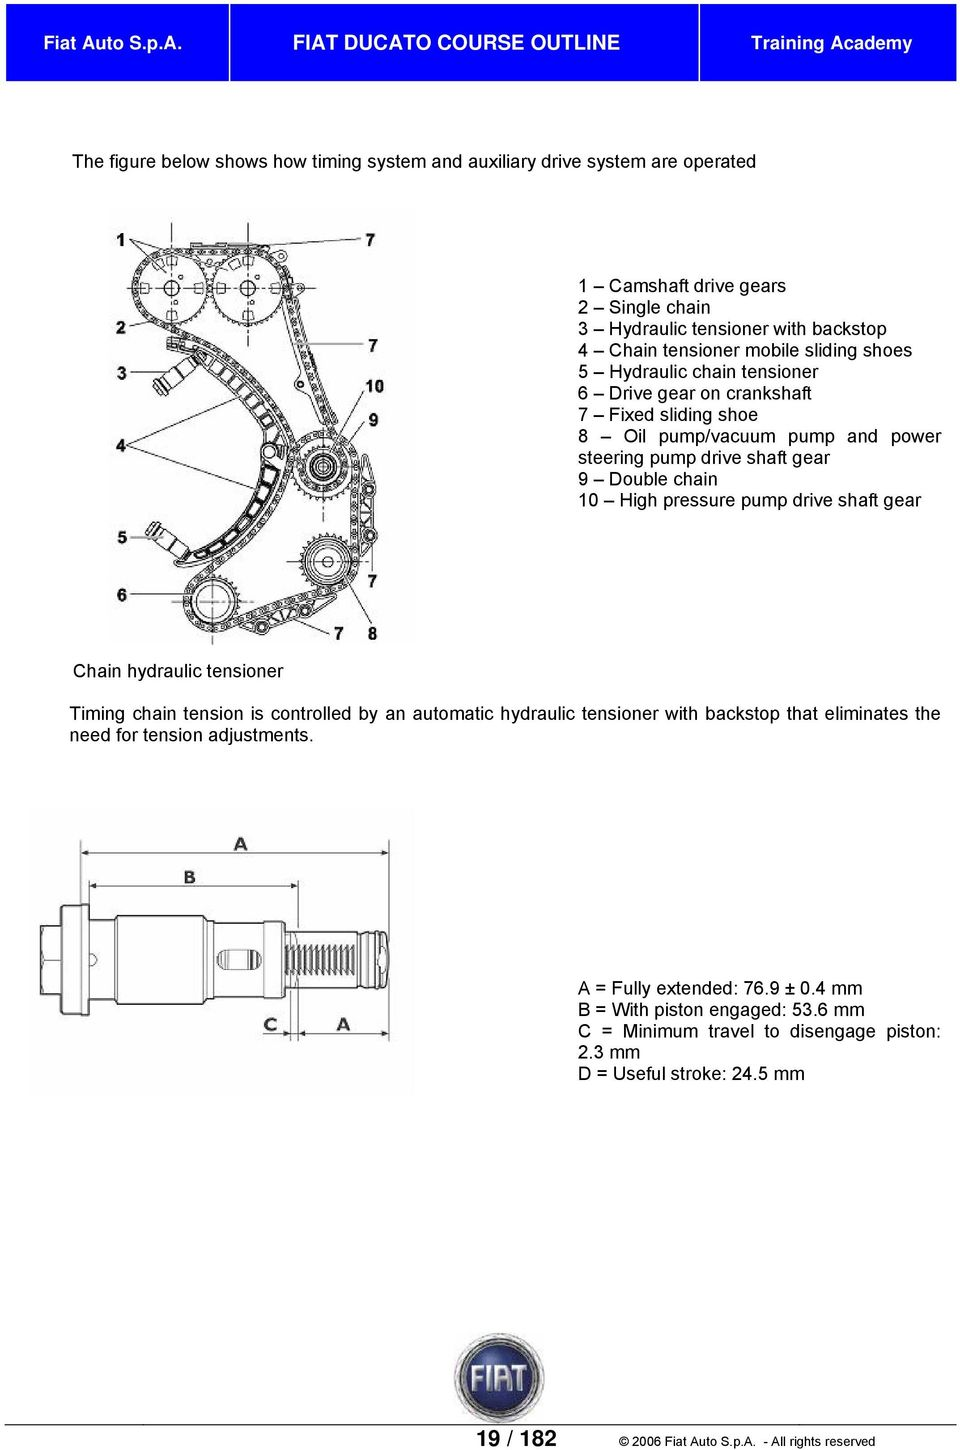 Fiat Ducato 3 0 Wiring Diagram Great Installation Of 76 124 Library Rh 12 Codingcommunity De 500 Spider